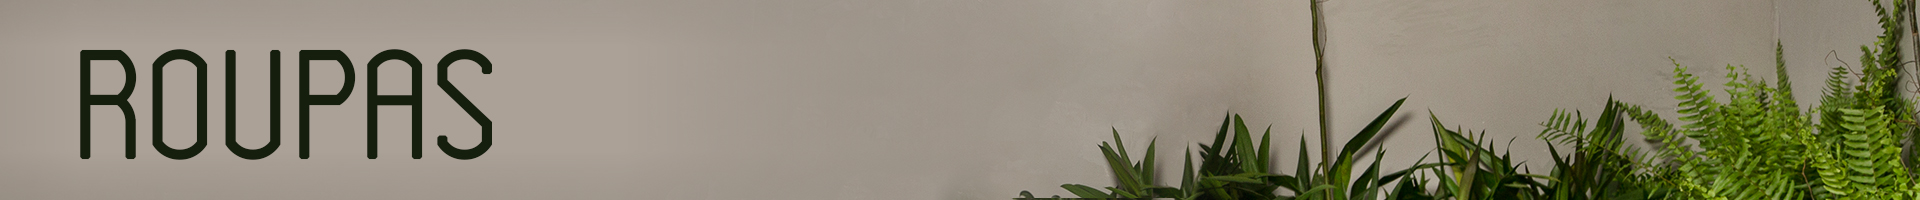 banner do departamento